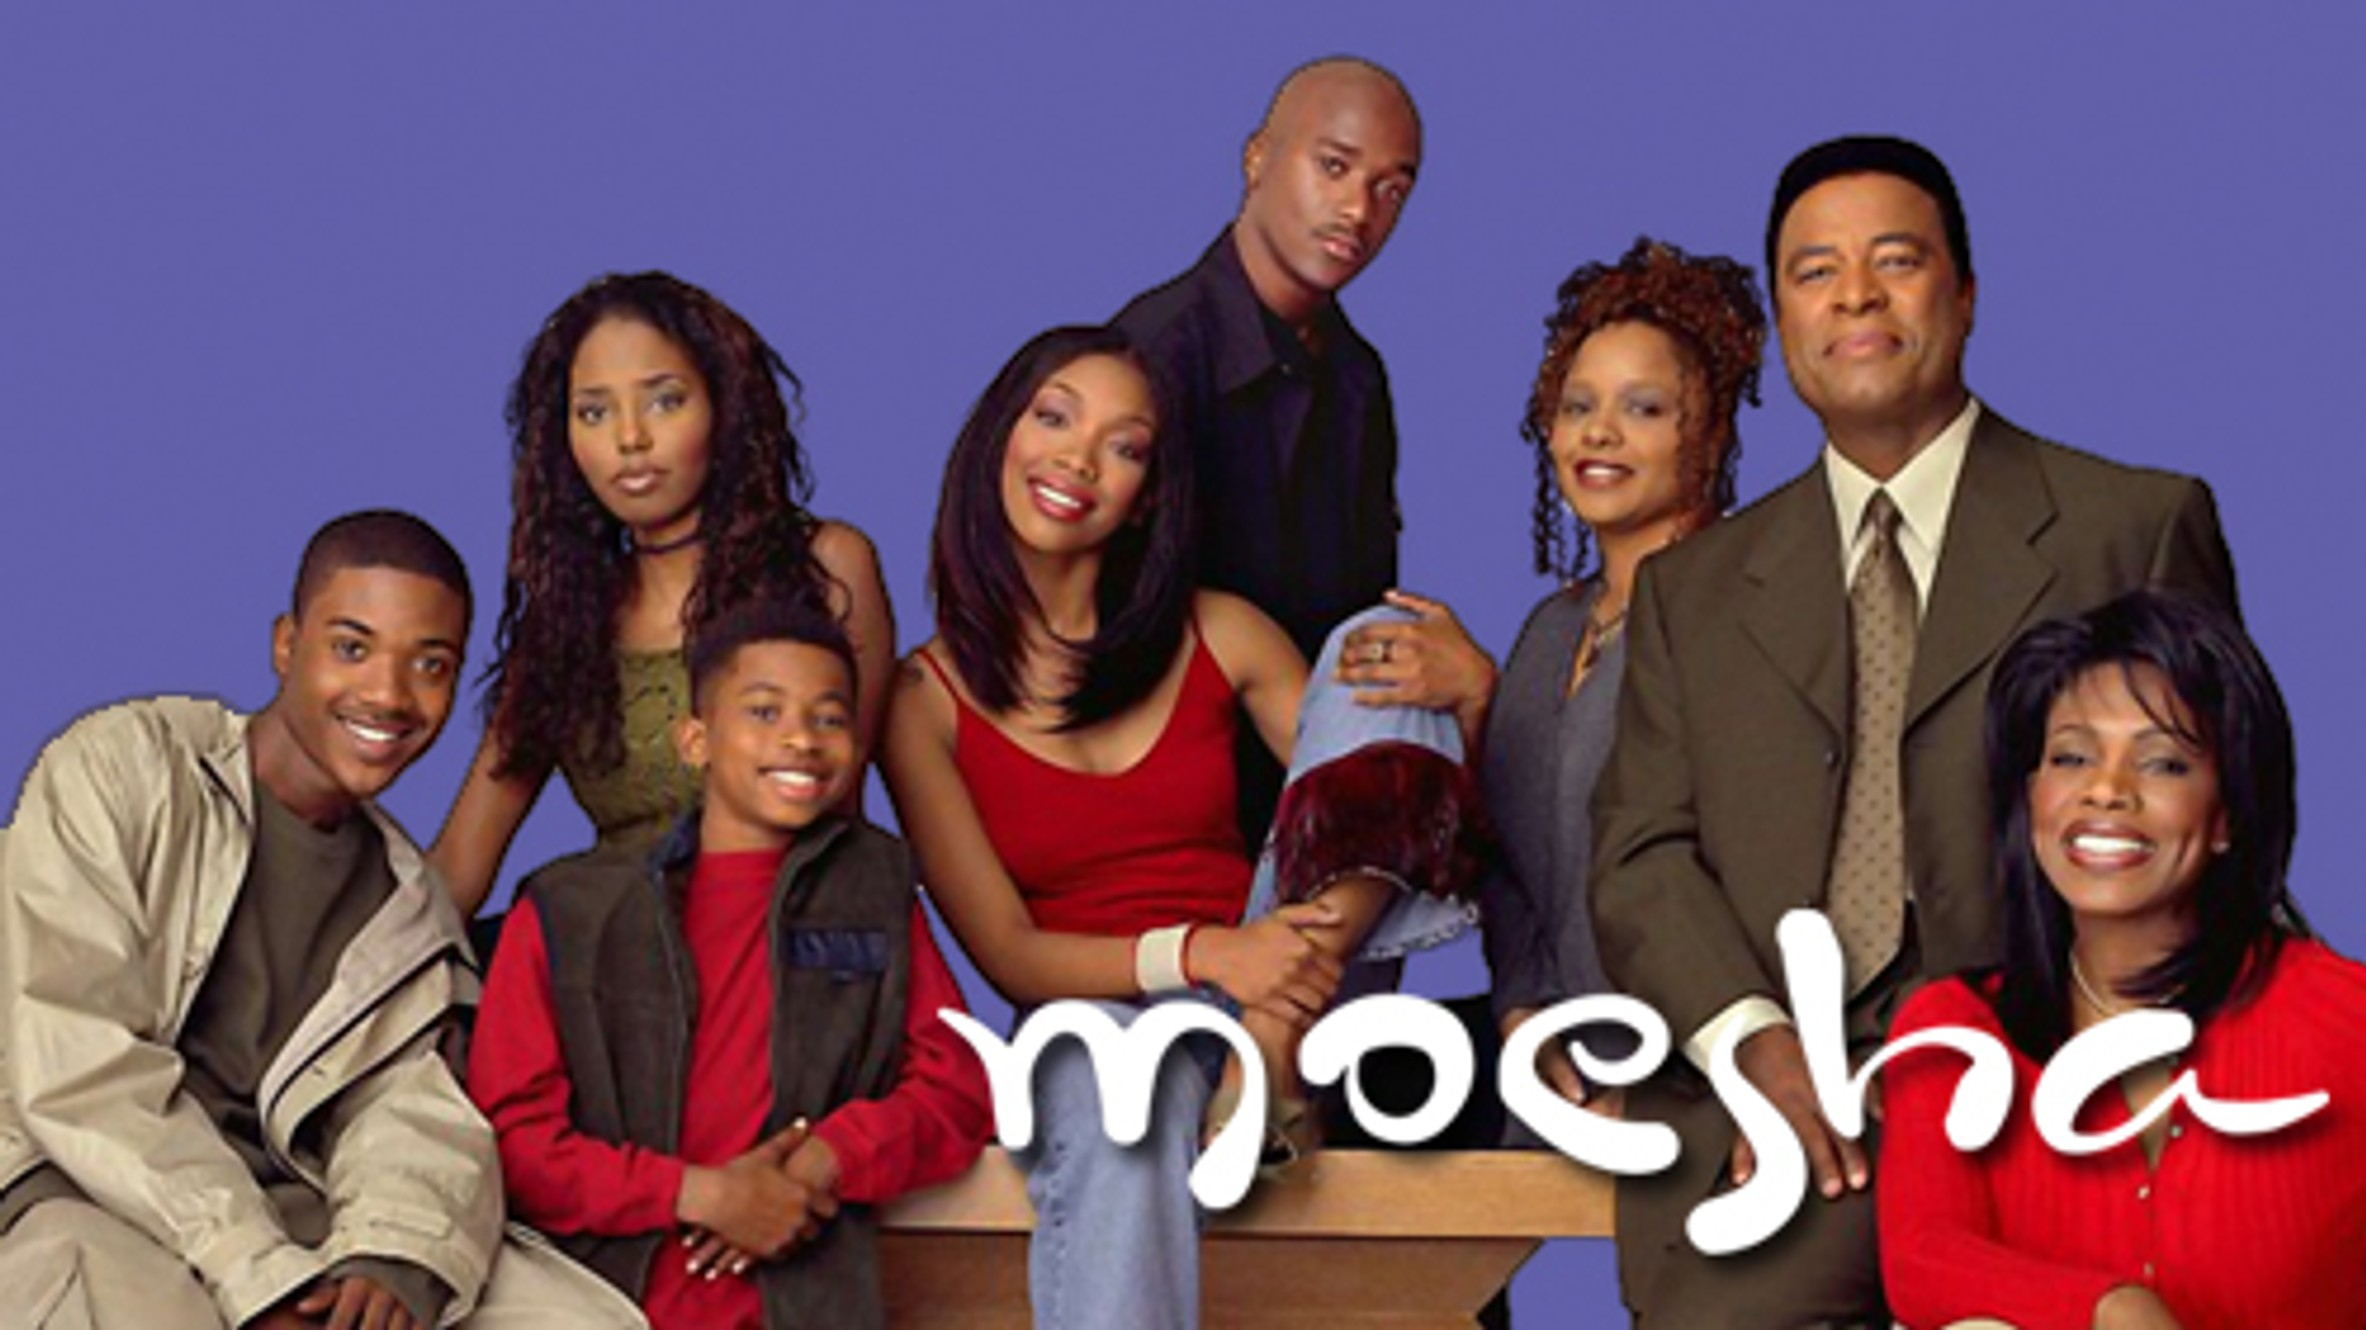 All the biggest celebrity cameos in 'Moesha'